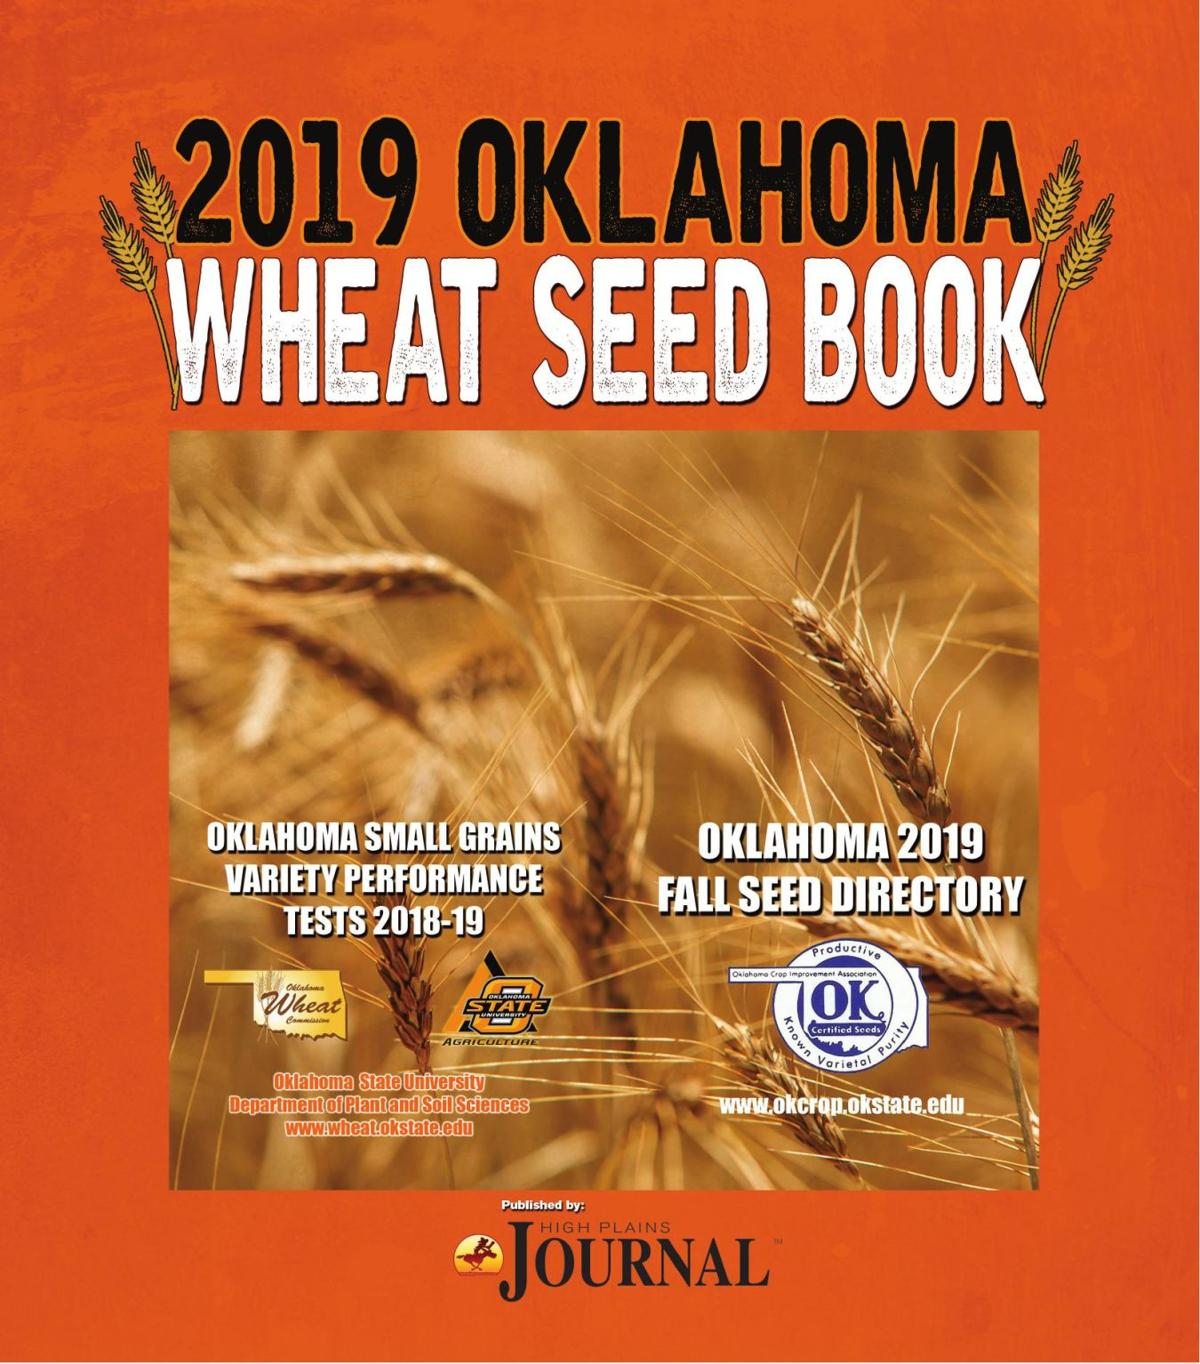 2019 Oklahoma Wheat